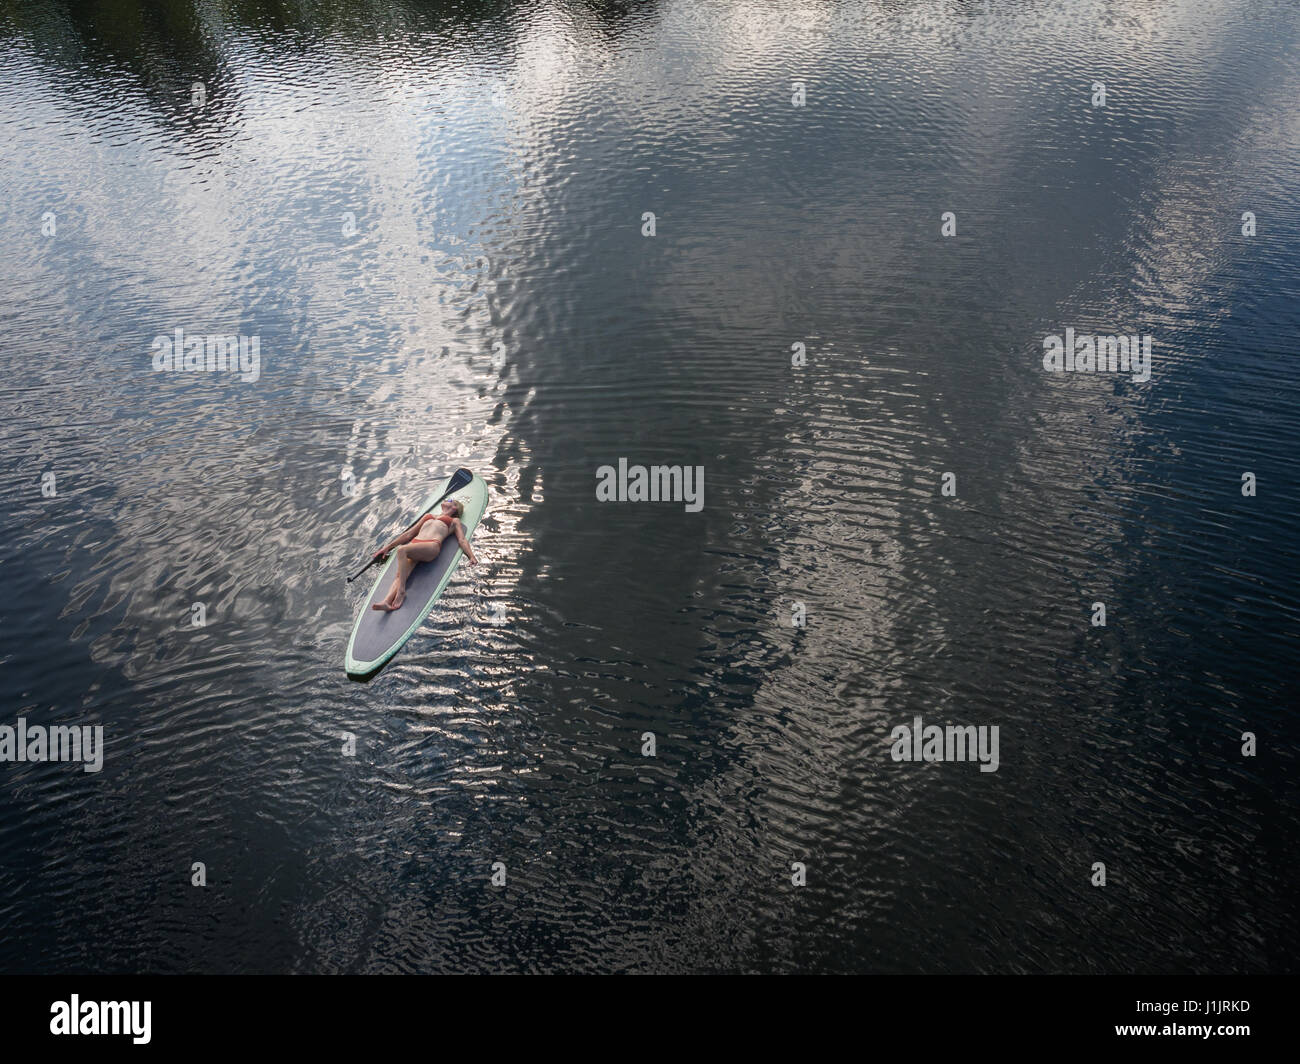 Aerial of paddle boarder, Crystal Lake, Virginia - Stock Image